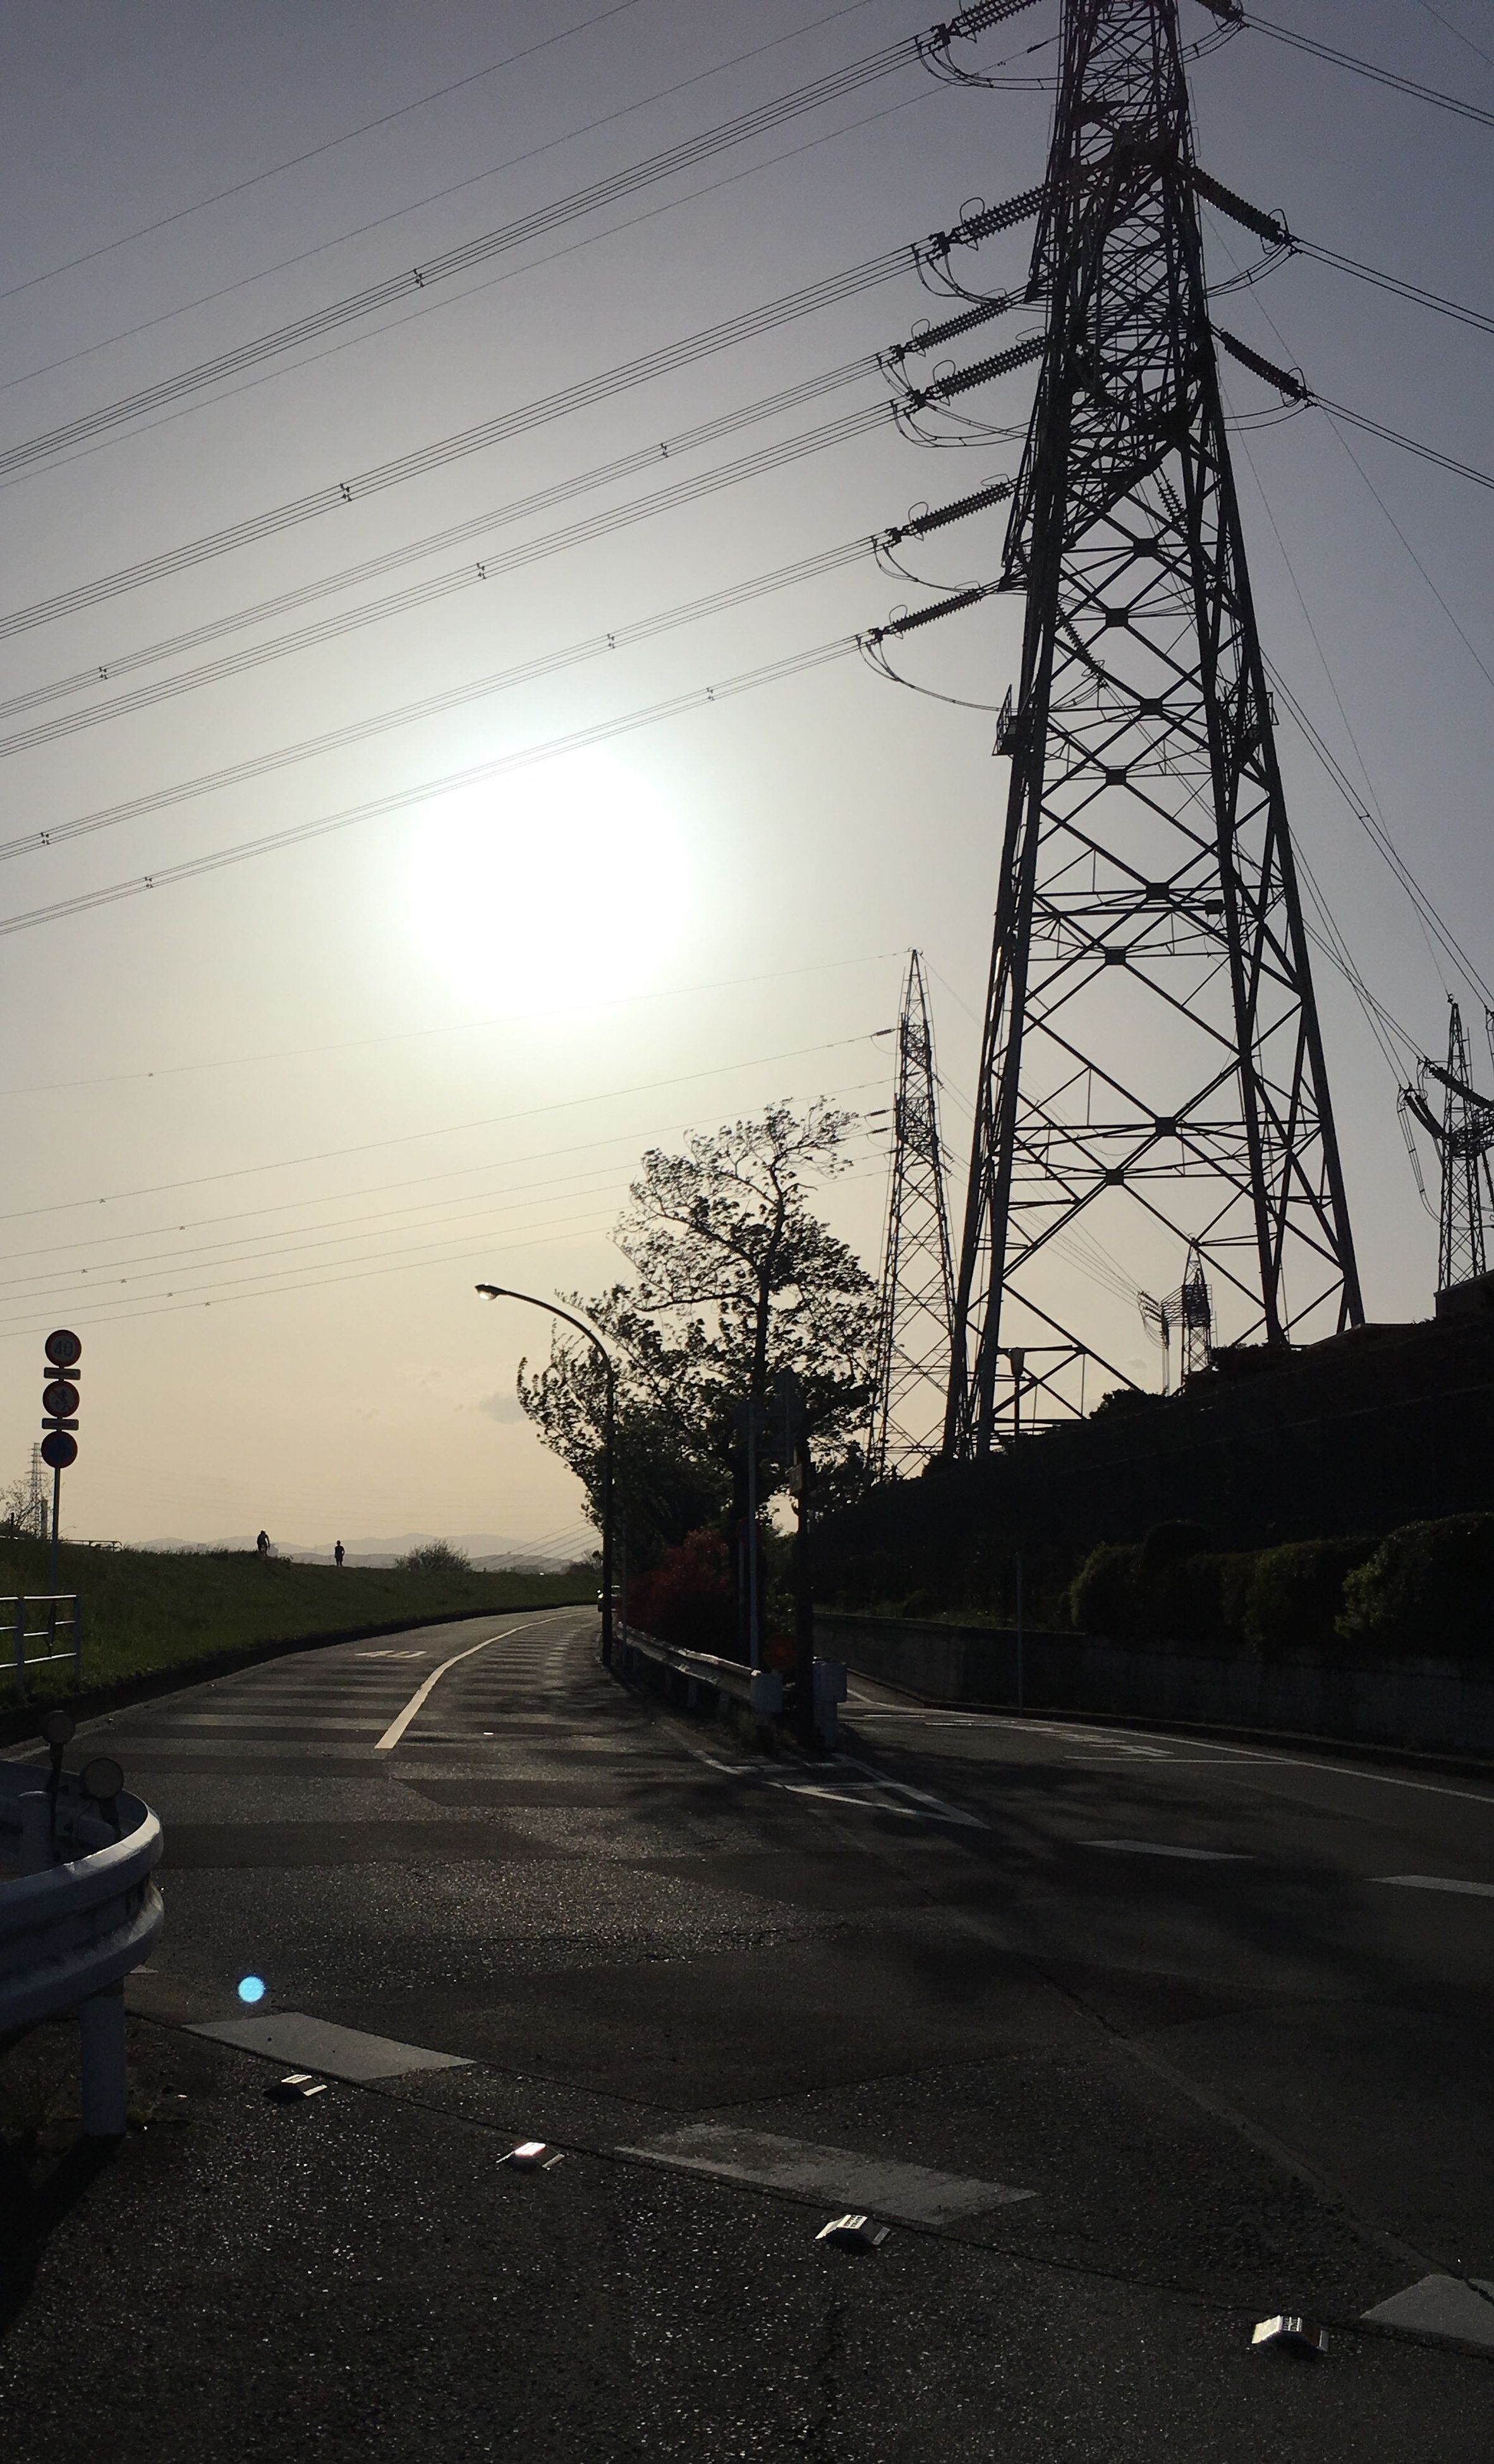 road, transportation, the way forward, electricity pylon, power line, street, clear sky, tree, bare tree, sky, silhouette, sunset, sun, sunlight, road marking, diminishing perspective, connection, street light, vanishing point, outdoors